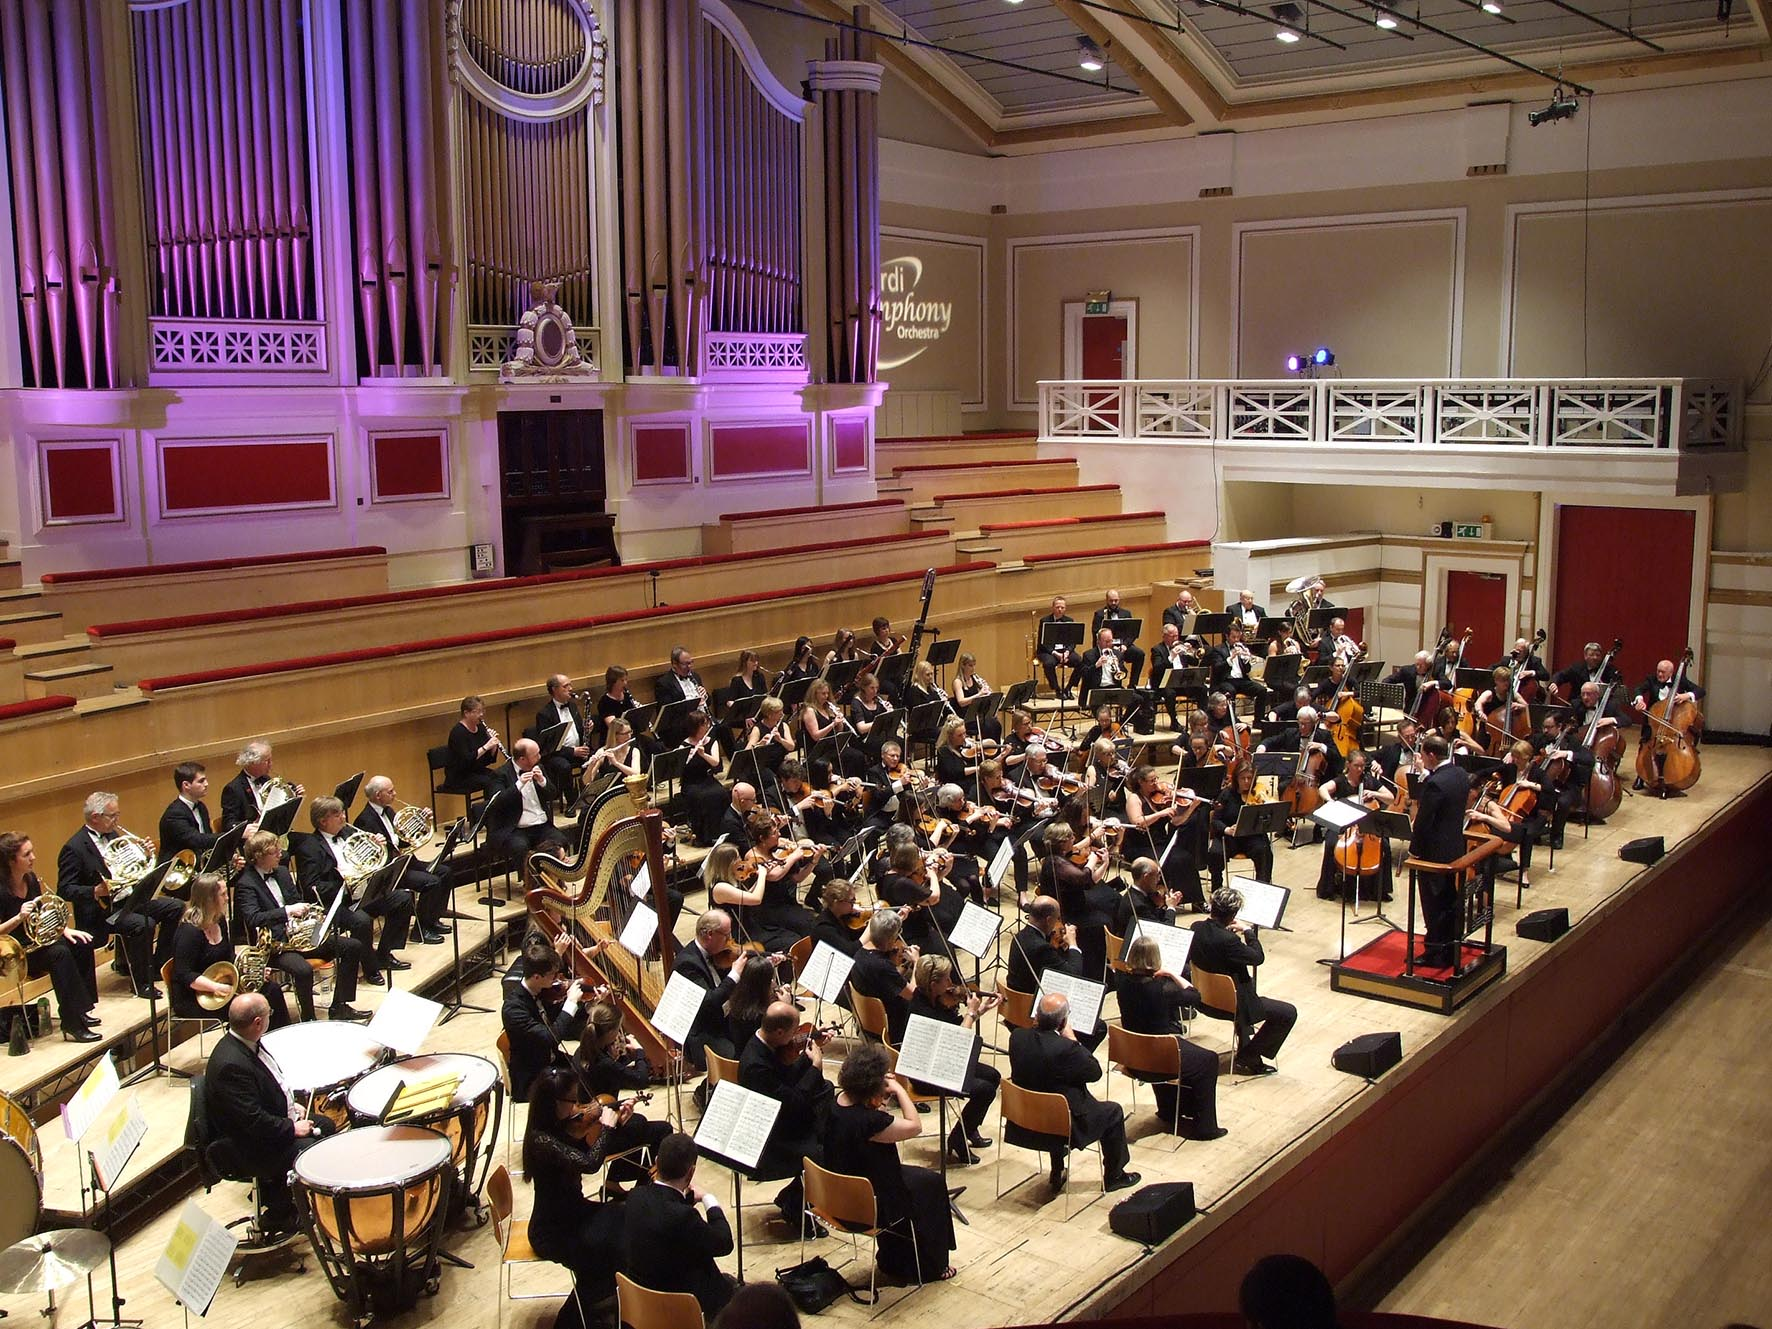 The Bardi end the 2017/18 De Montfort Hall season in style!